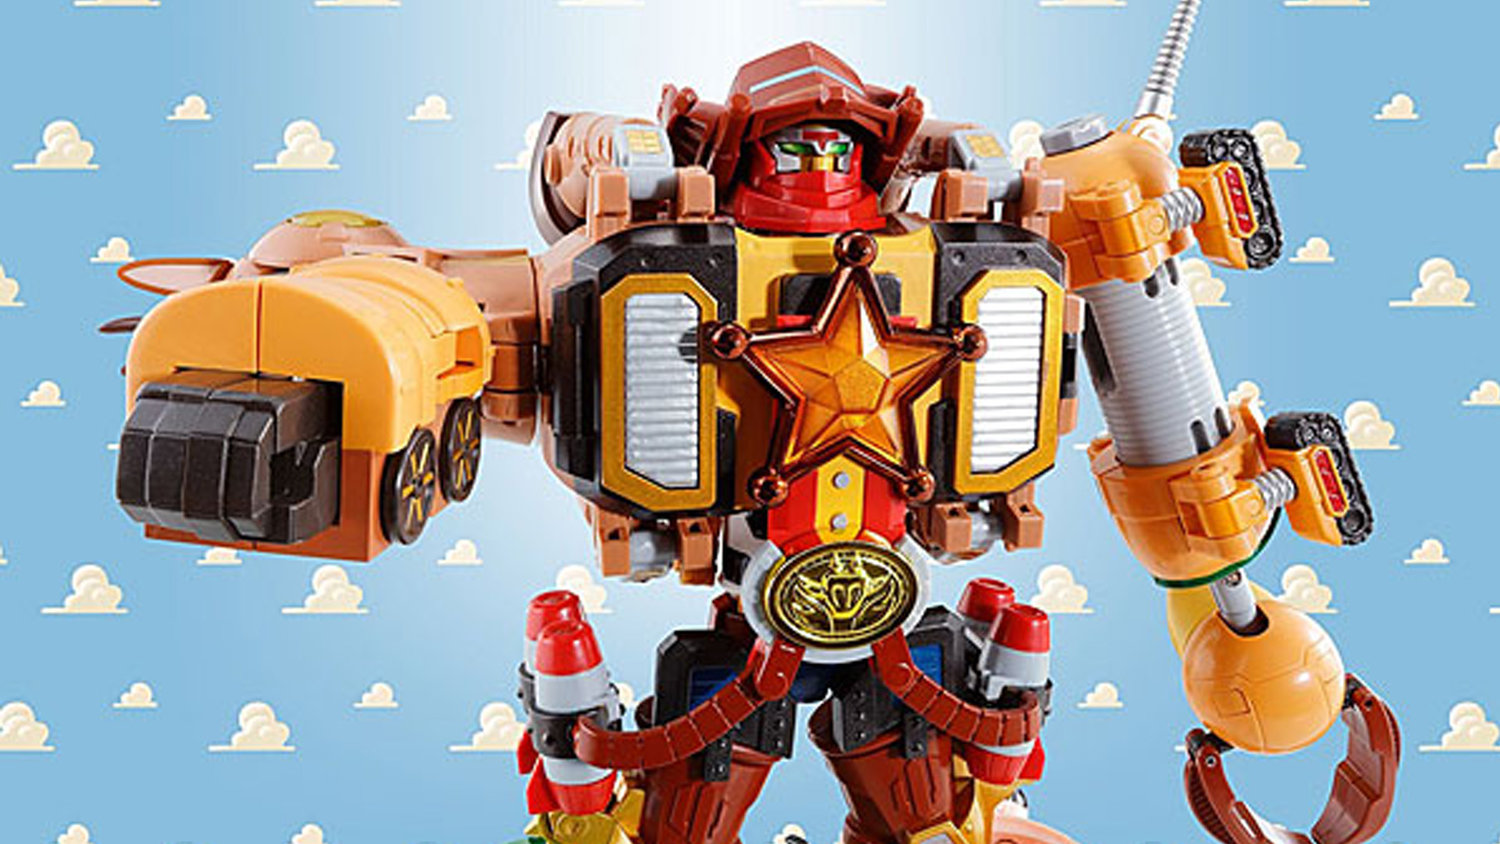 This Figure Combines TOY STORY Characters Into a POWER RANGERS-Style Megazord